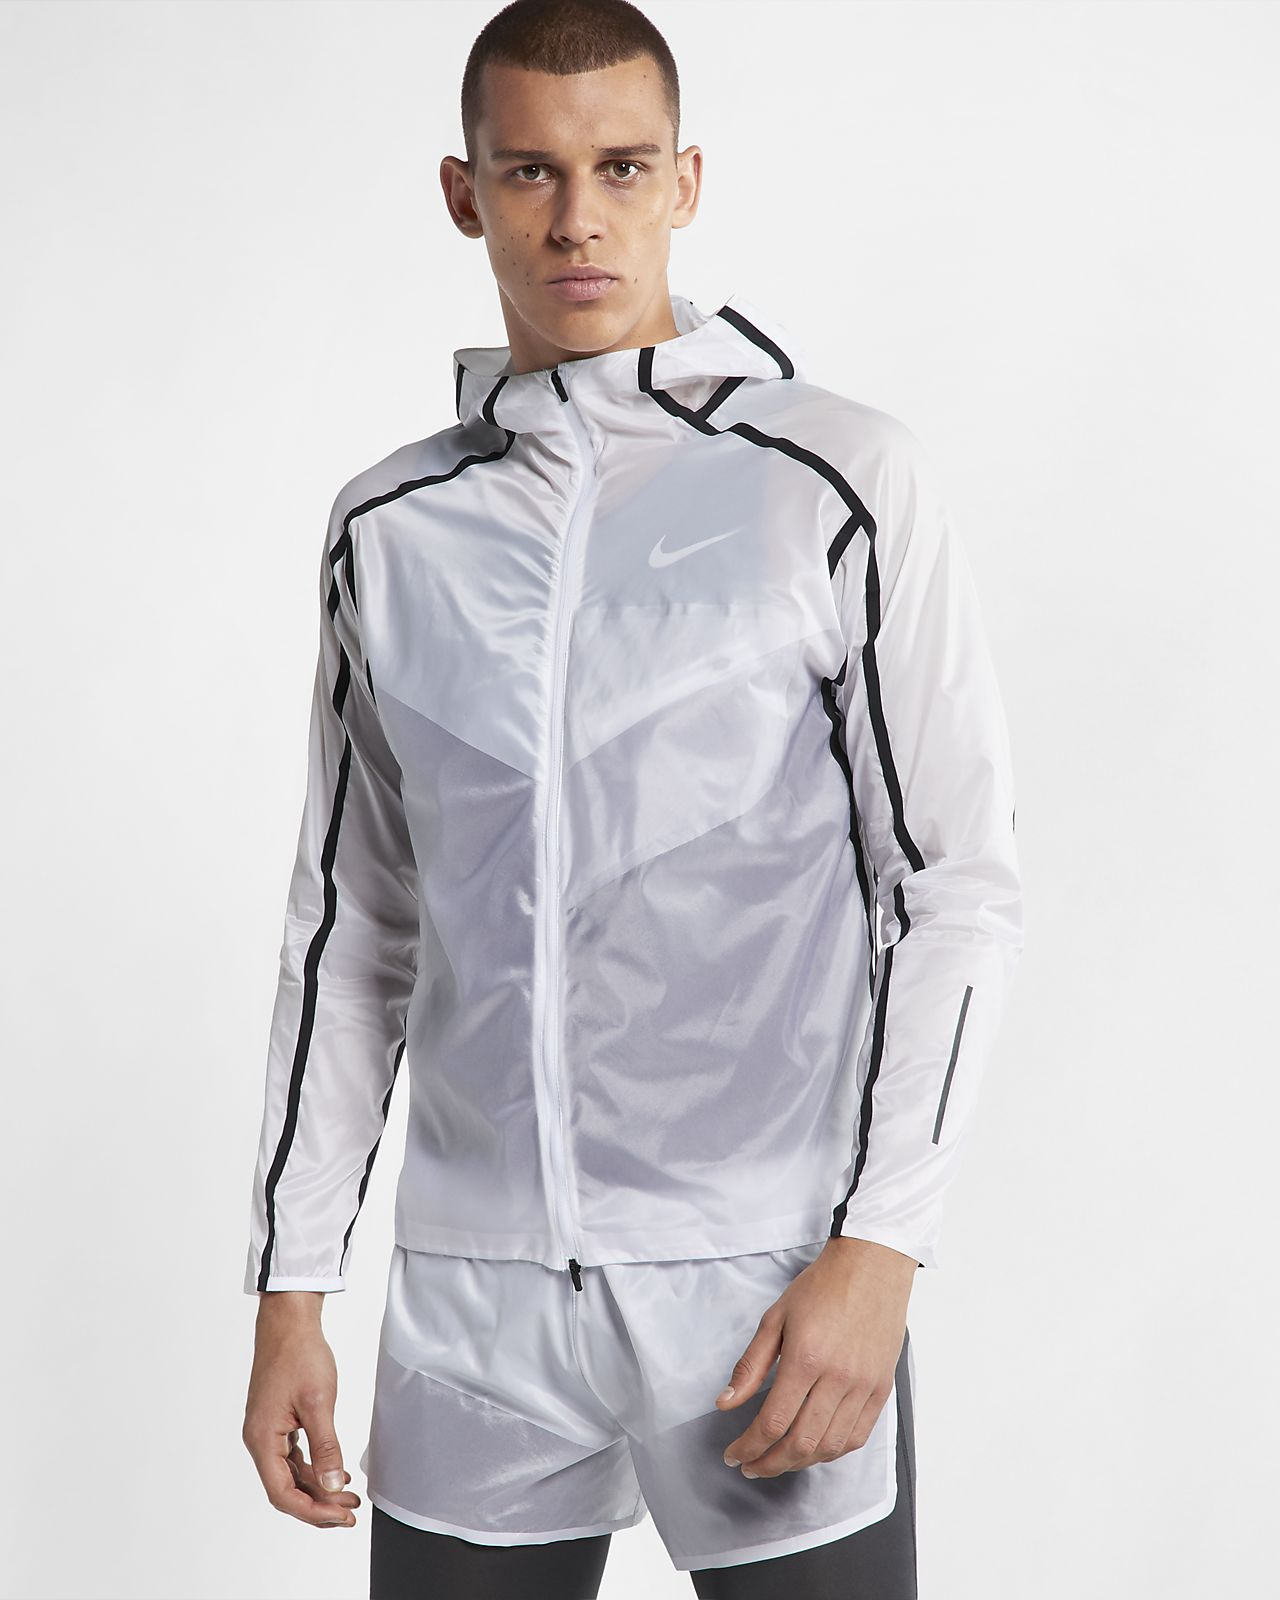 Nike Tech Pack Men's Running Jacket